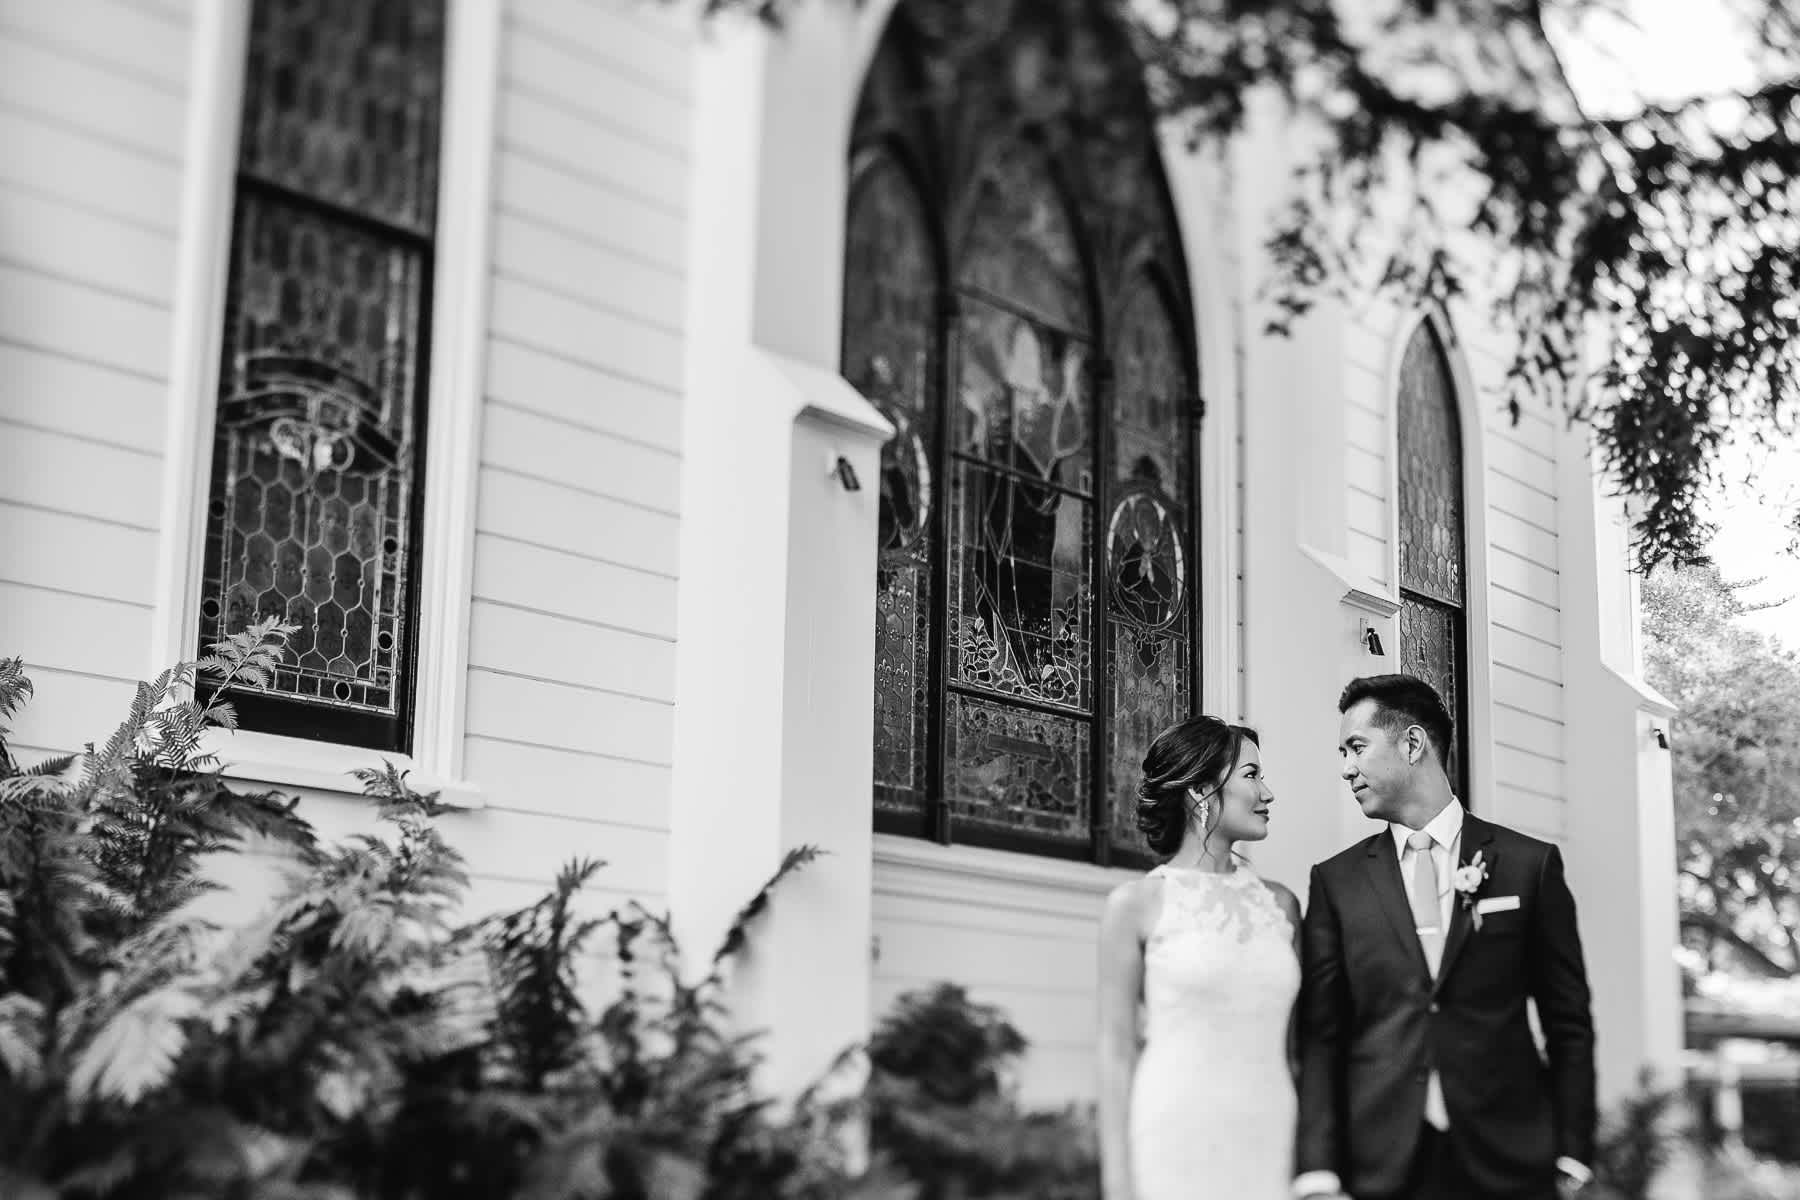 mountain-view-ca-catholic-church-wedding-los-altos-reception-67